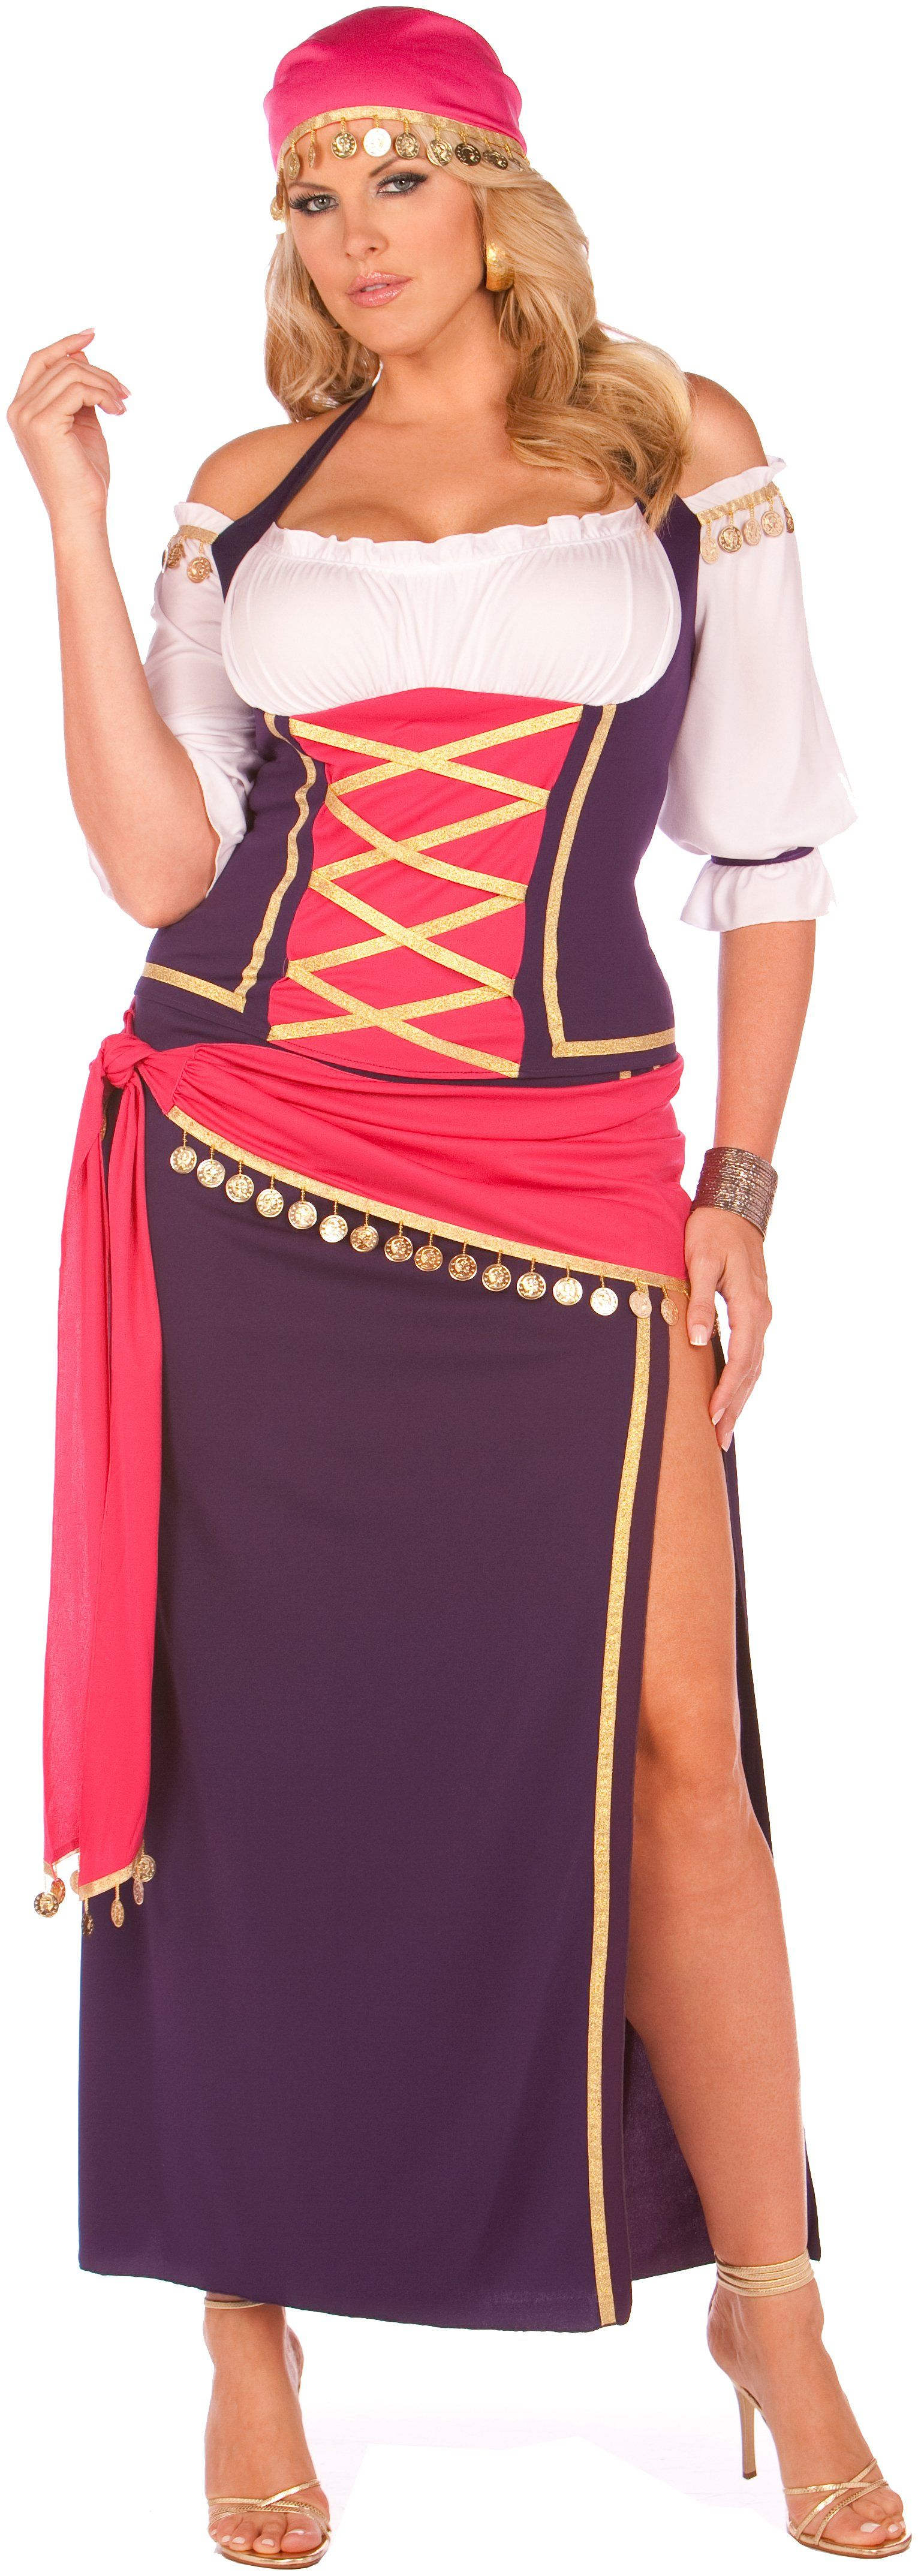 Gypsy Maiden Adult Plus Costume | Beauty | Pinterest | Disfraz para ...